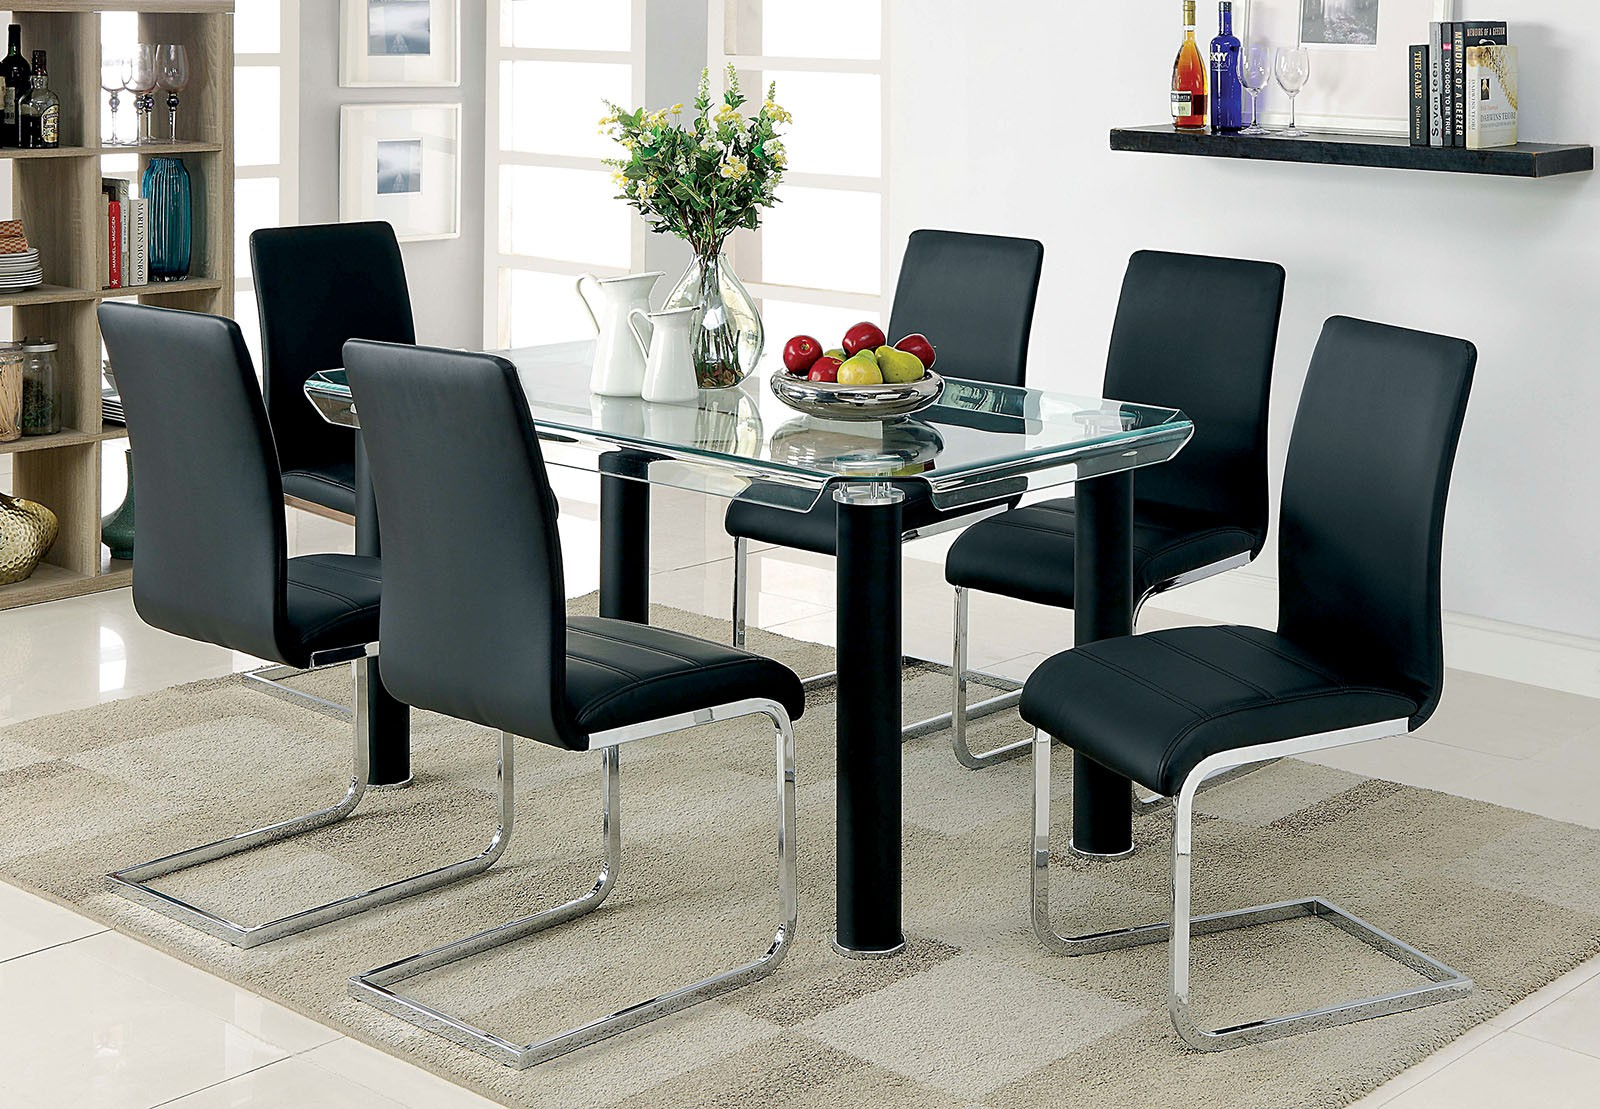 WALKERVILLE I / 5 Or 7 Piece Dining Set With Glass Top In Black ...